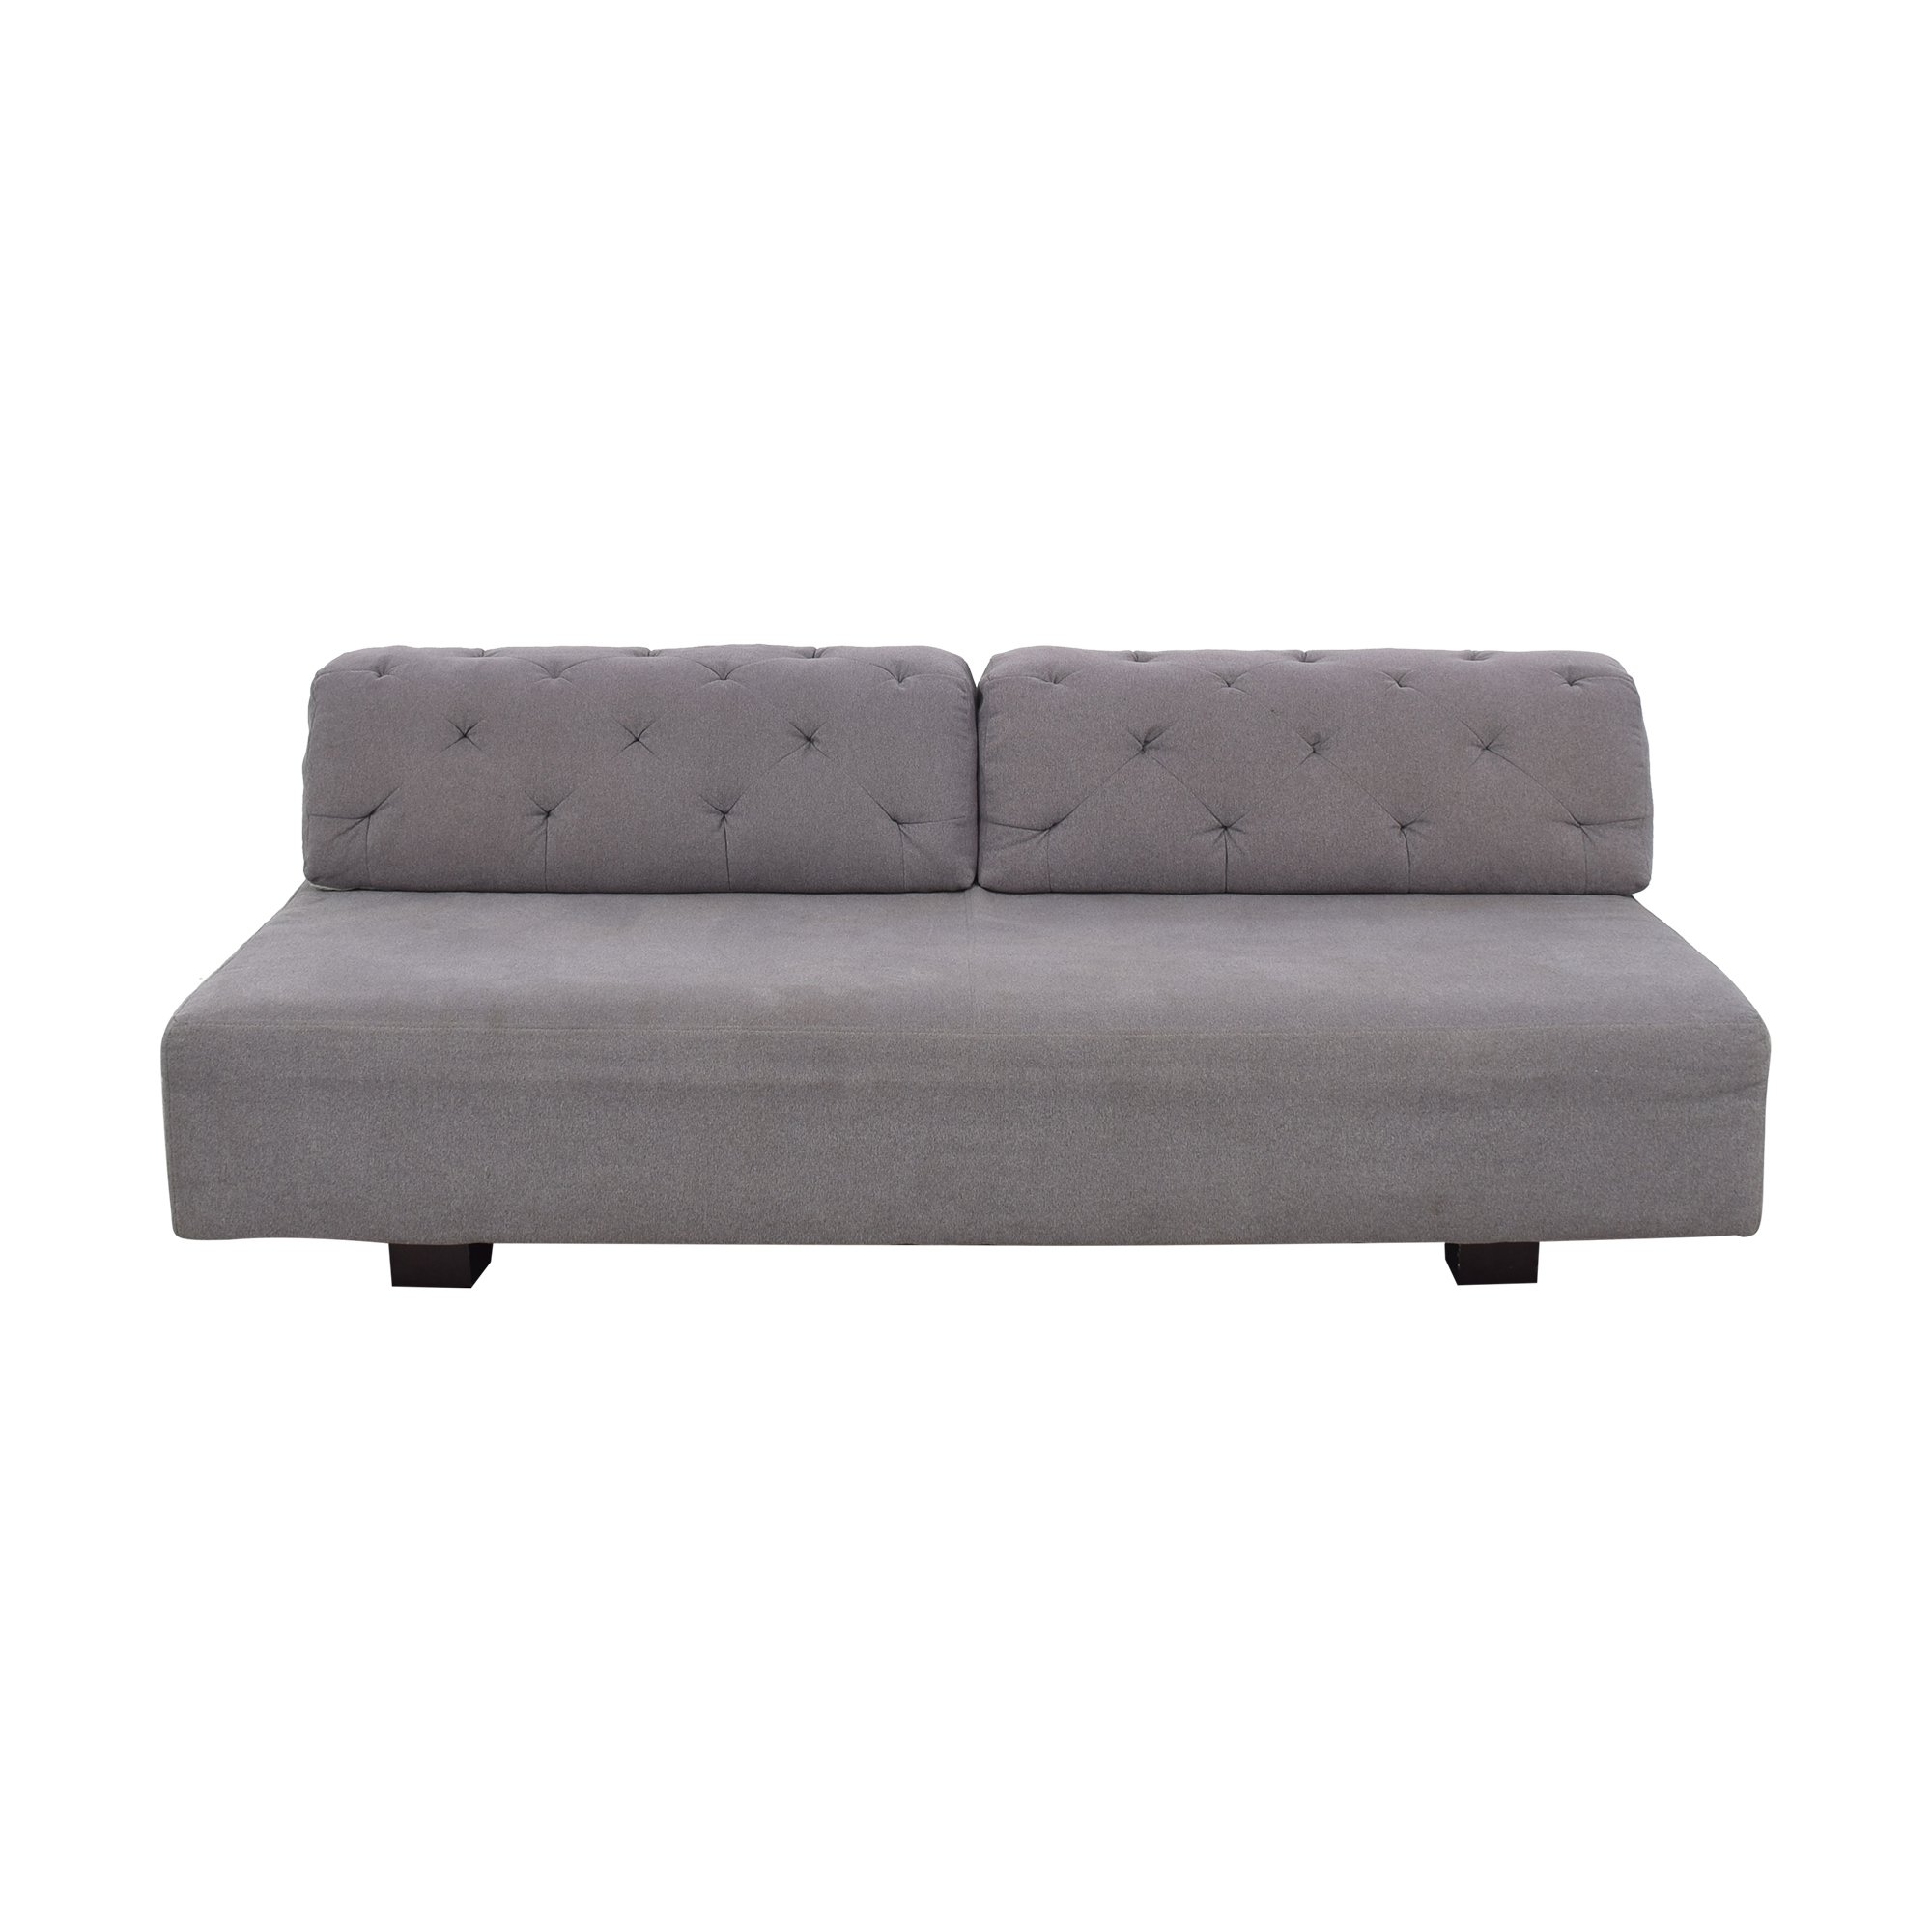 West Elm Tillary Sofa with Tufted Back Cushions / Classic Sofas